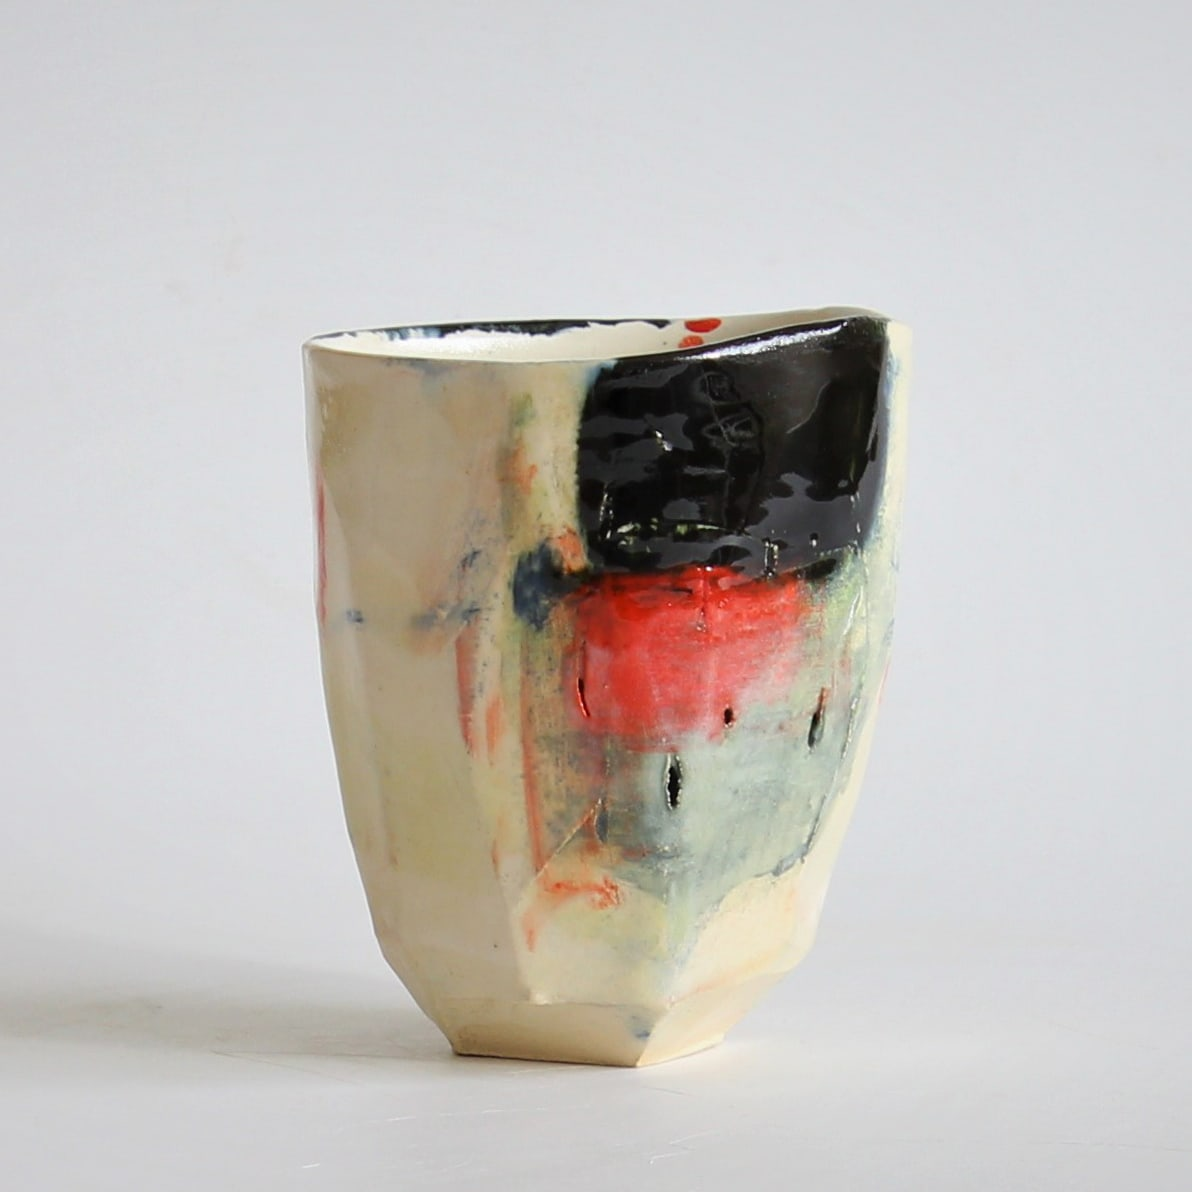 """<span class=""""link fancybox-details-link""""><a href=""""/artists/34-barry-stedman/works/6736-barry-stedman-each-passing-day-series-vessel-j-2019/"""">View Detail Page</a></span><div class=""""artist""""><strong>Barry Stedman</strong></div> b. 1965 <div class=""""title""""><em>'Each Passing Day' Series Vessel (J)</em>, 2019</div> <div class=""""medium"""">thrown and altered earthenware, decorated with slips</div> <div class=""""dimensions"""">11 x 9 cm</div><div class=""""price"""">£140.00</div><div class=""""copyright_line"""">Own Art: £ 14 x 10 Months, 0% APR</div>"""